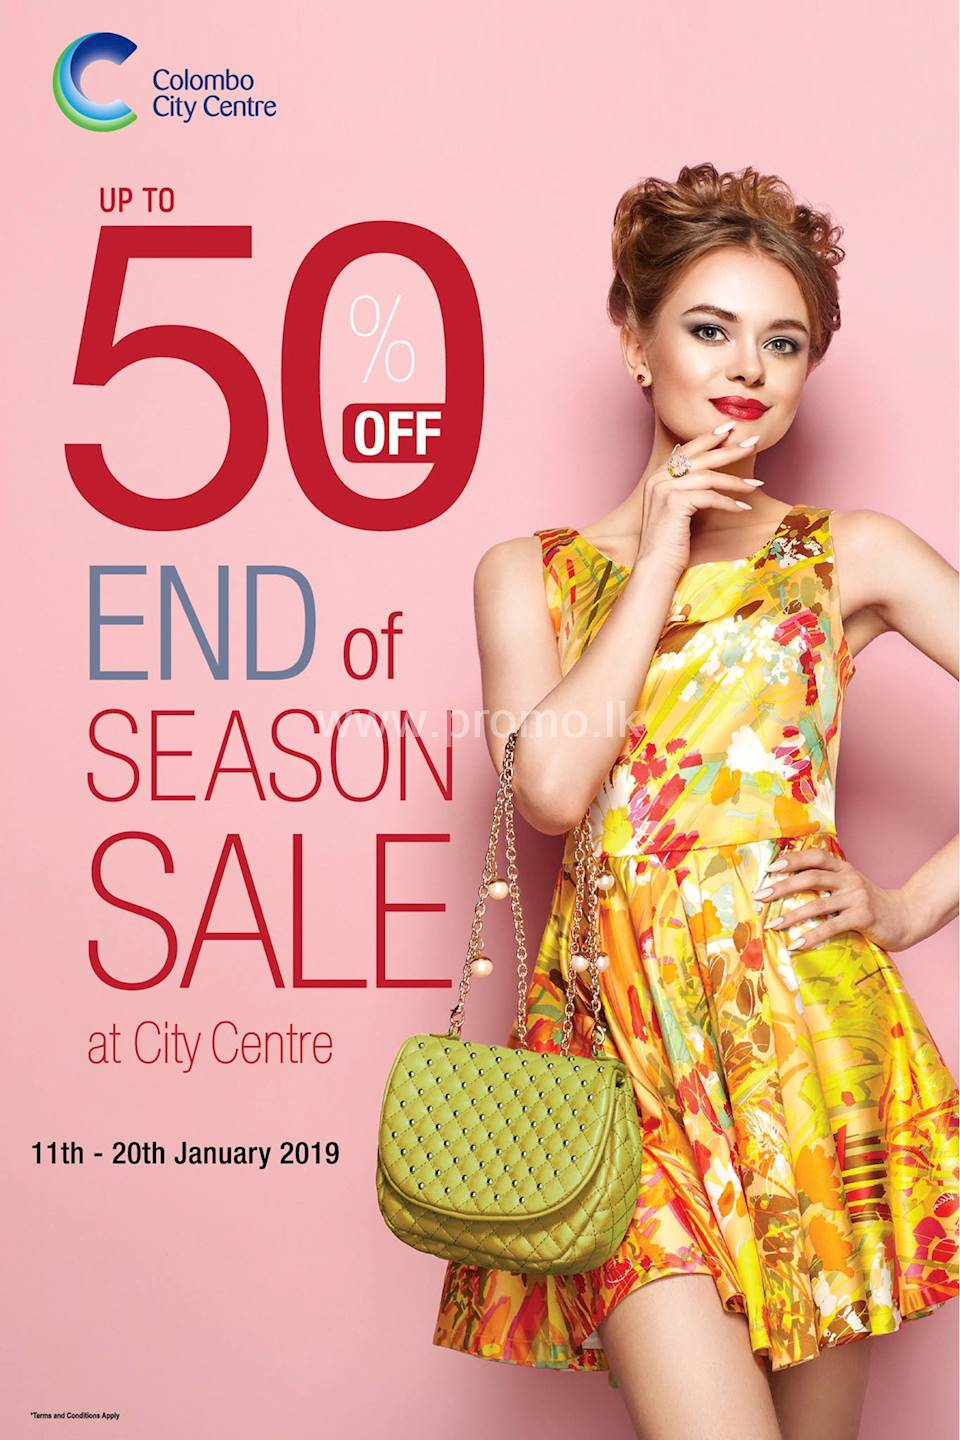 Get Up to 50% off on over 30 international brands at Colombo City Center